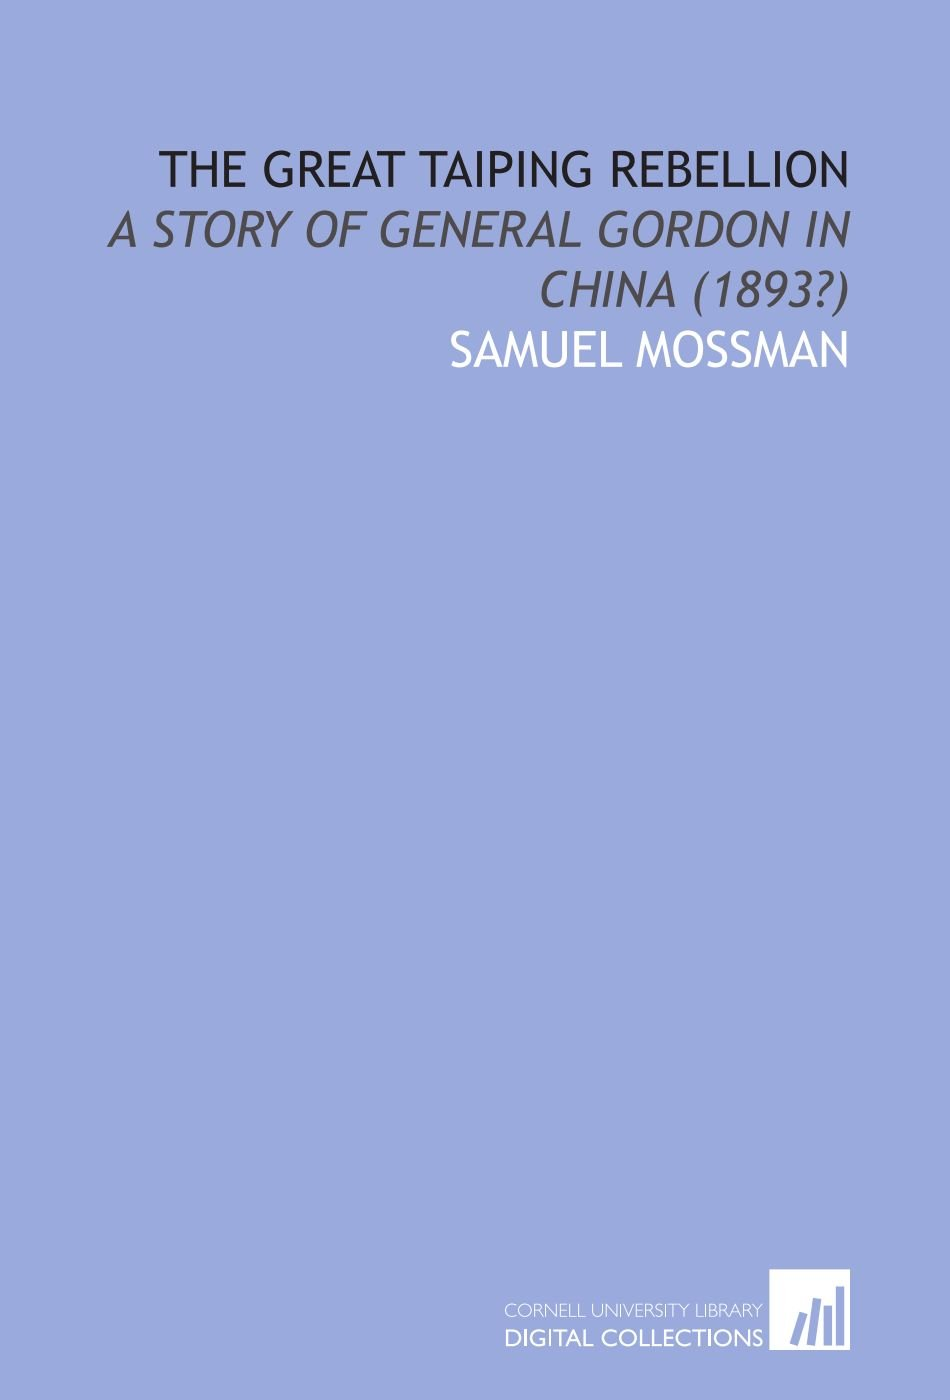 Download The Great Taiping Rebellion: A Story of General Gordon in China (1893?) PDF